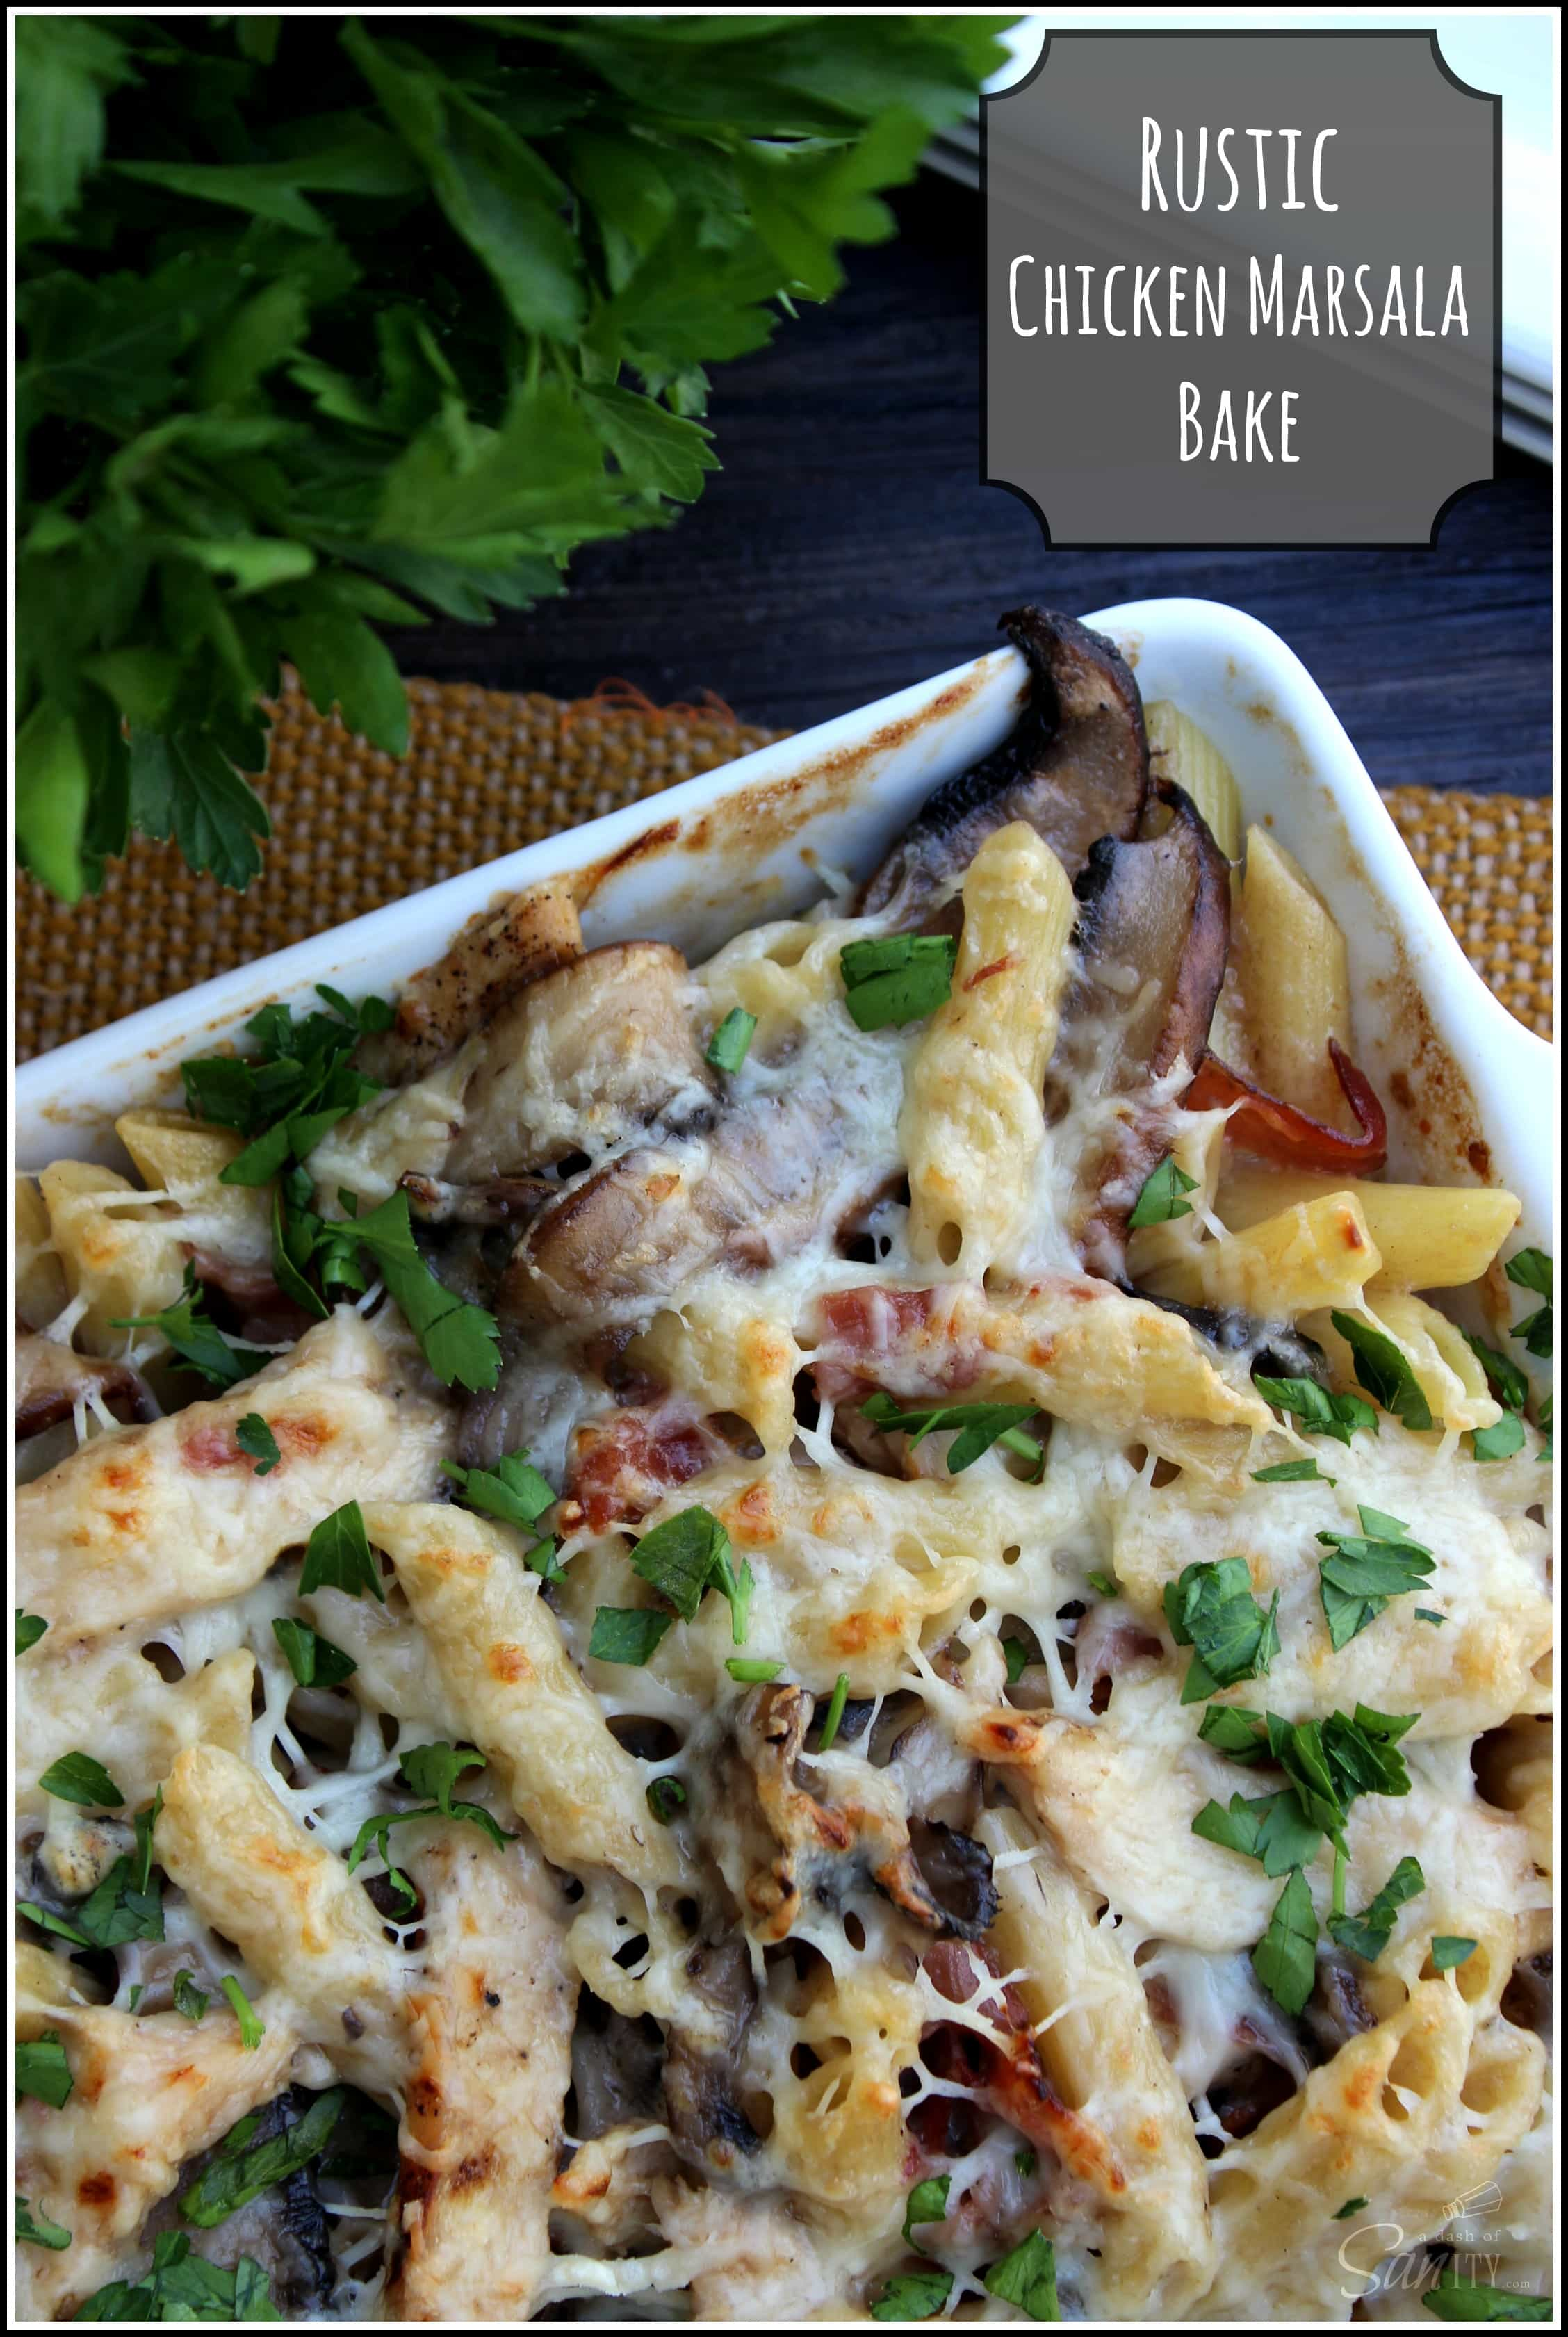 Rustic Chicken Marsala Bake Recipe